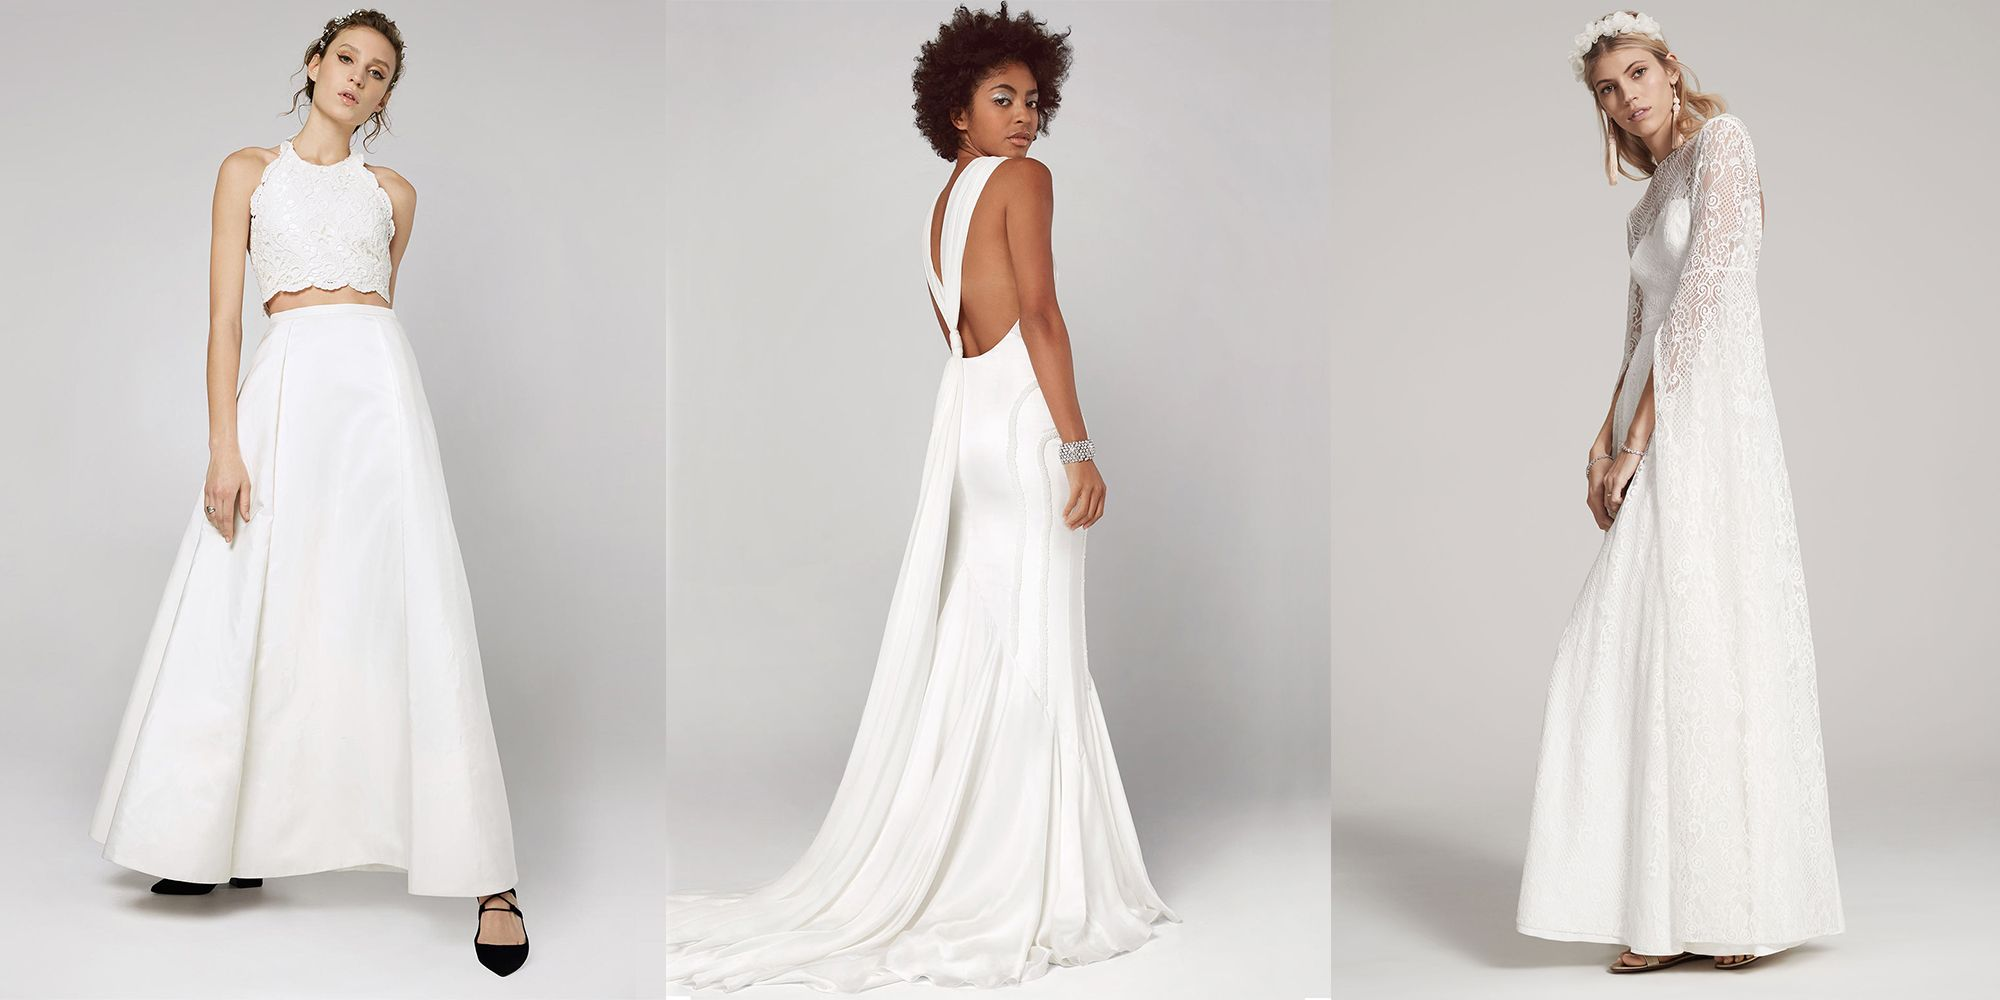 6 FastFashion Brands That Are Making Bridal Affordable